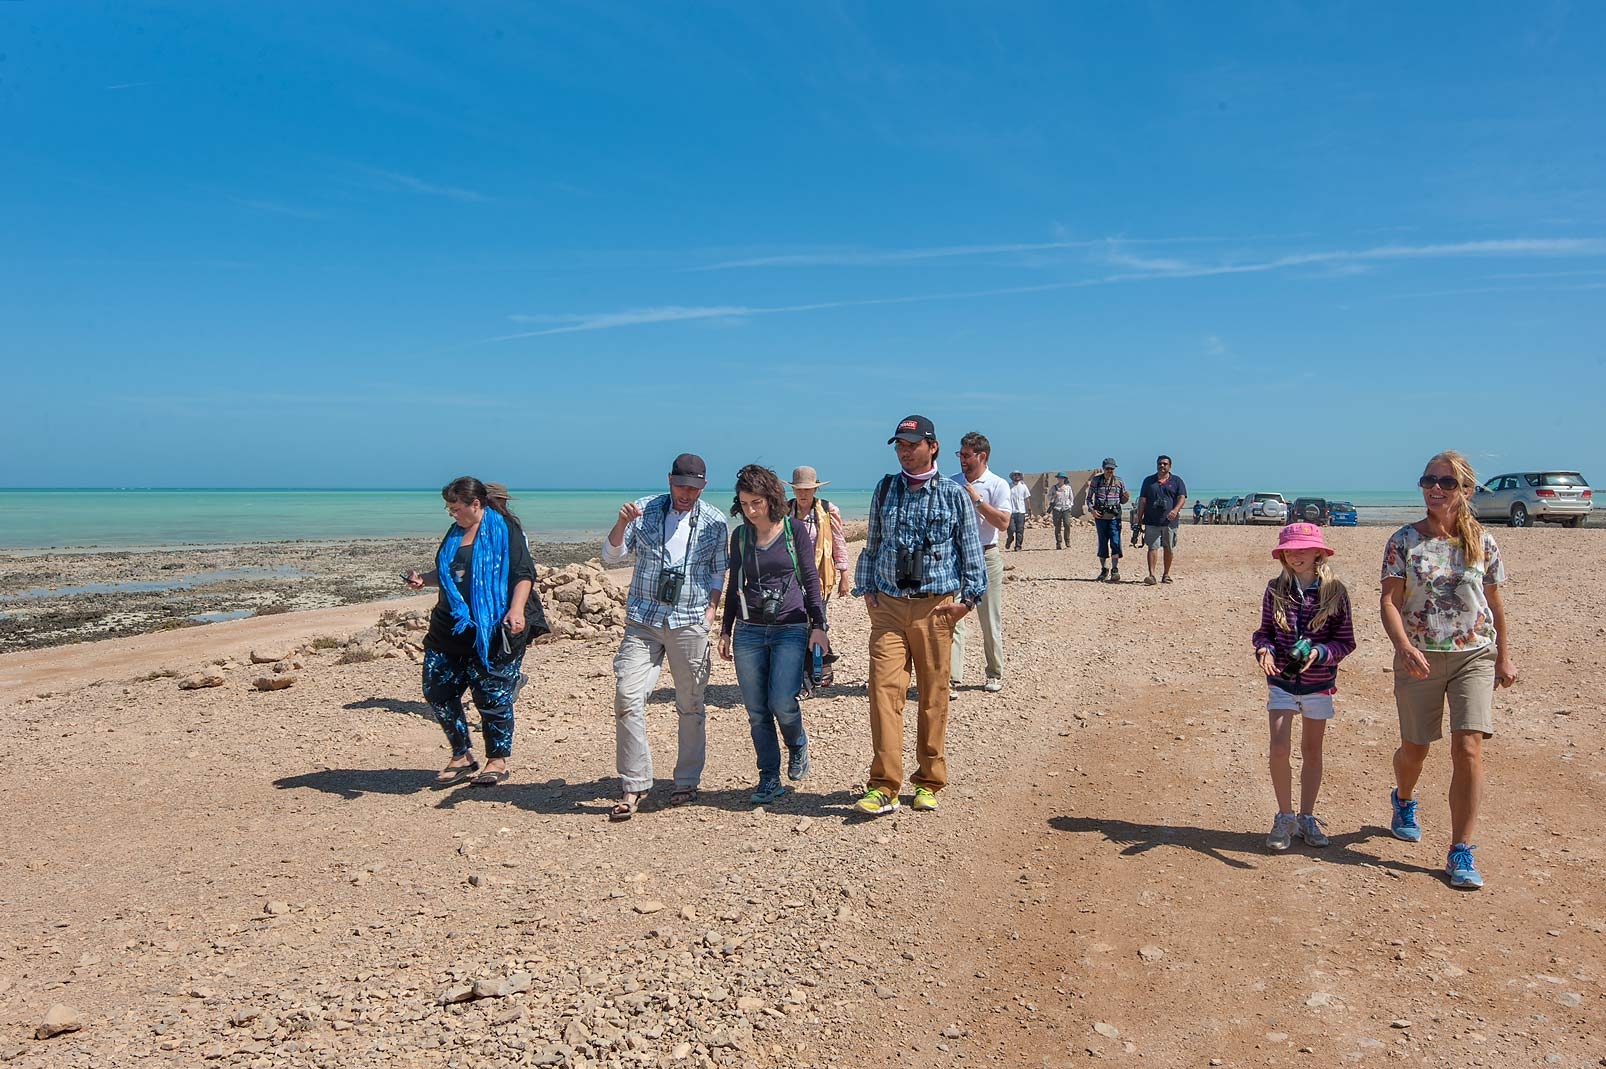 QNHG (Qatar Natural History Group) heading to...peninsula. Ruwais, Northern Qatar